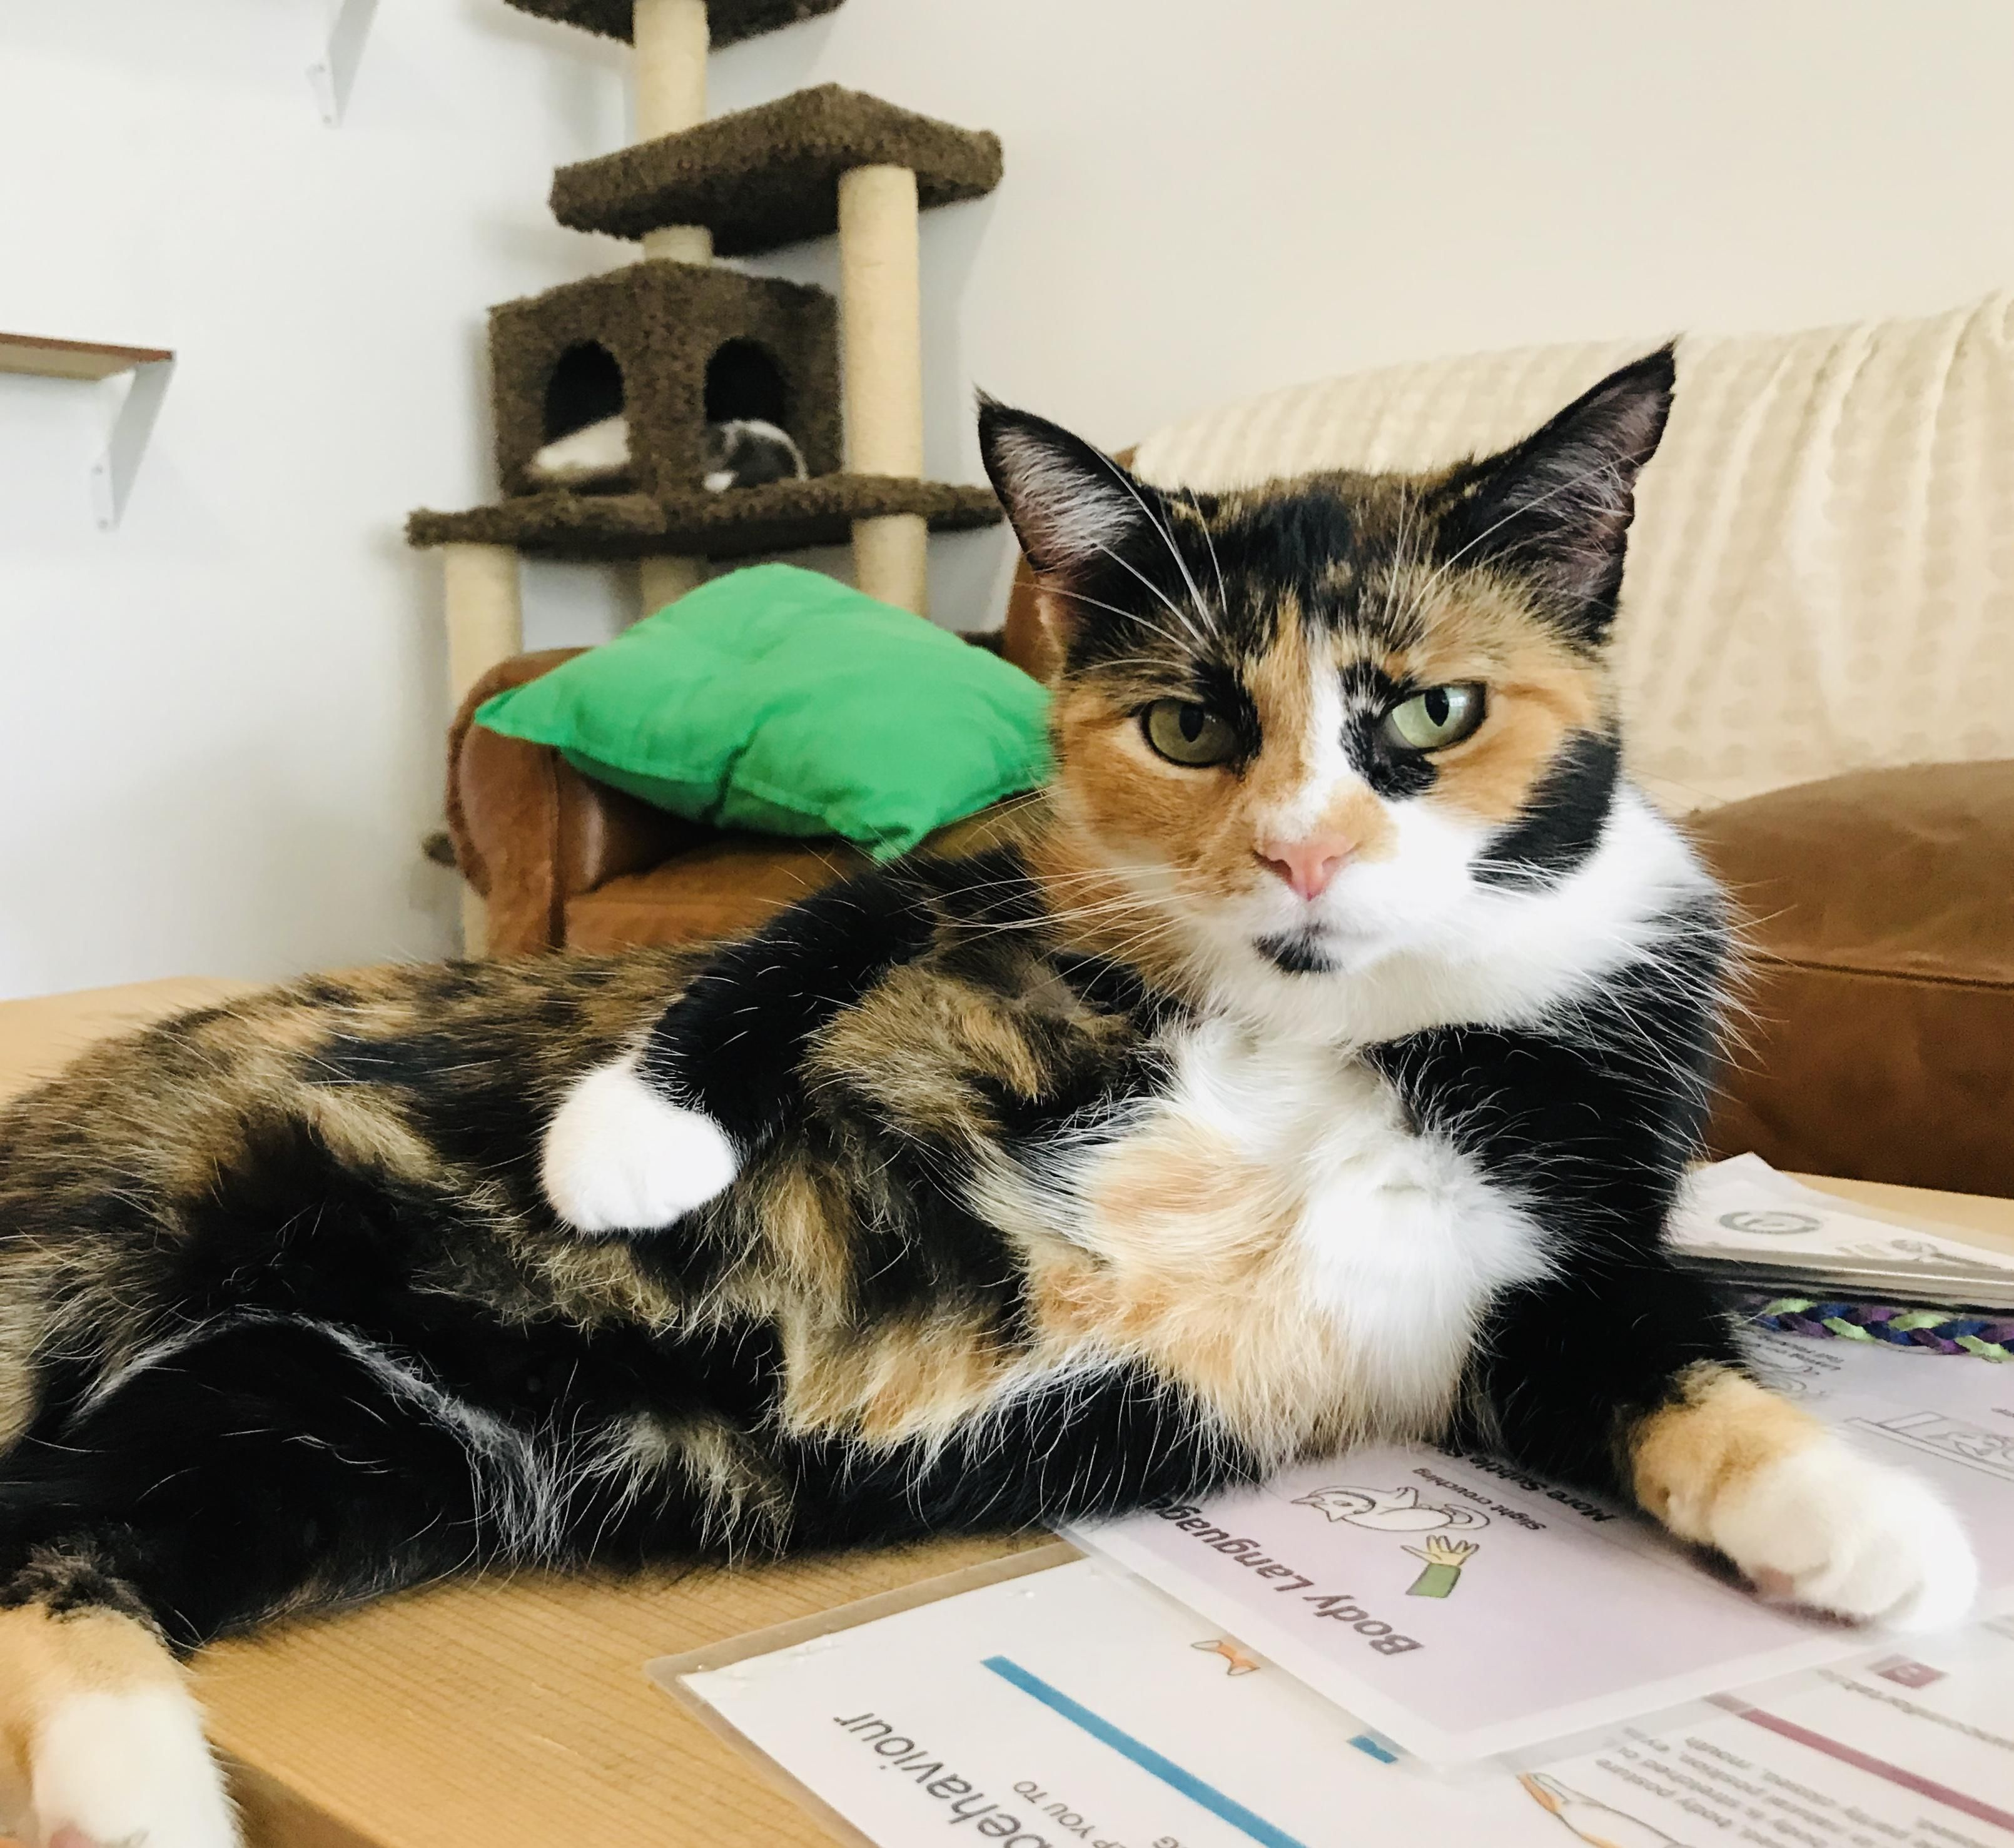 Polka Dot is available for adoption at Nine Live Cat Cafe